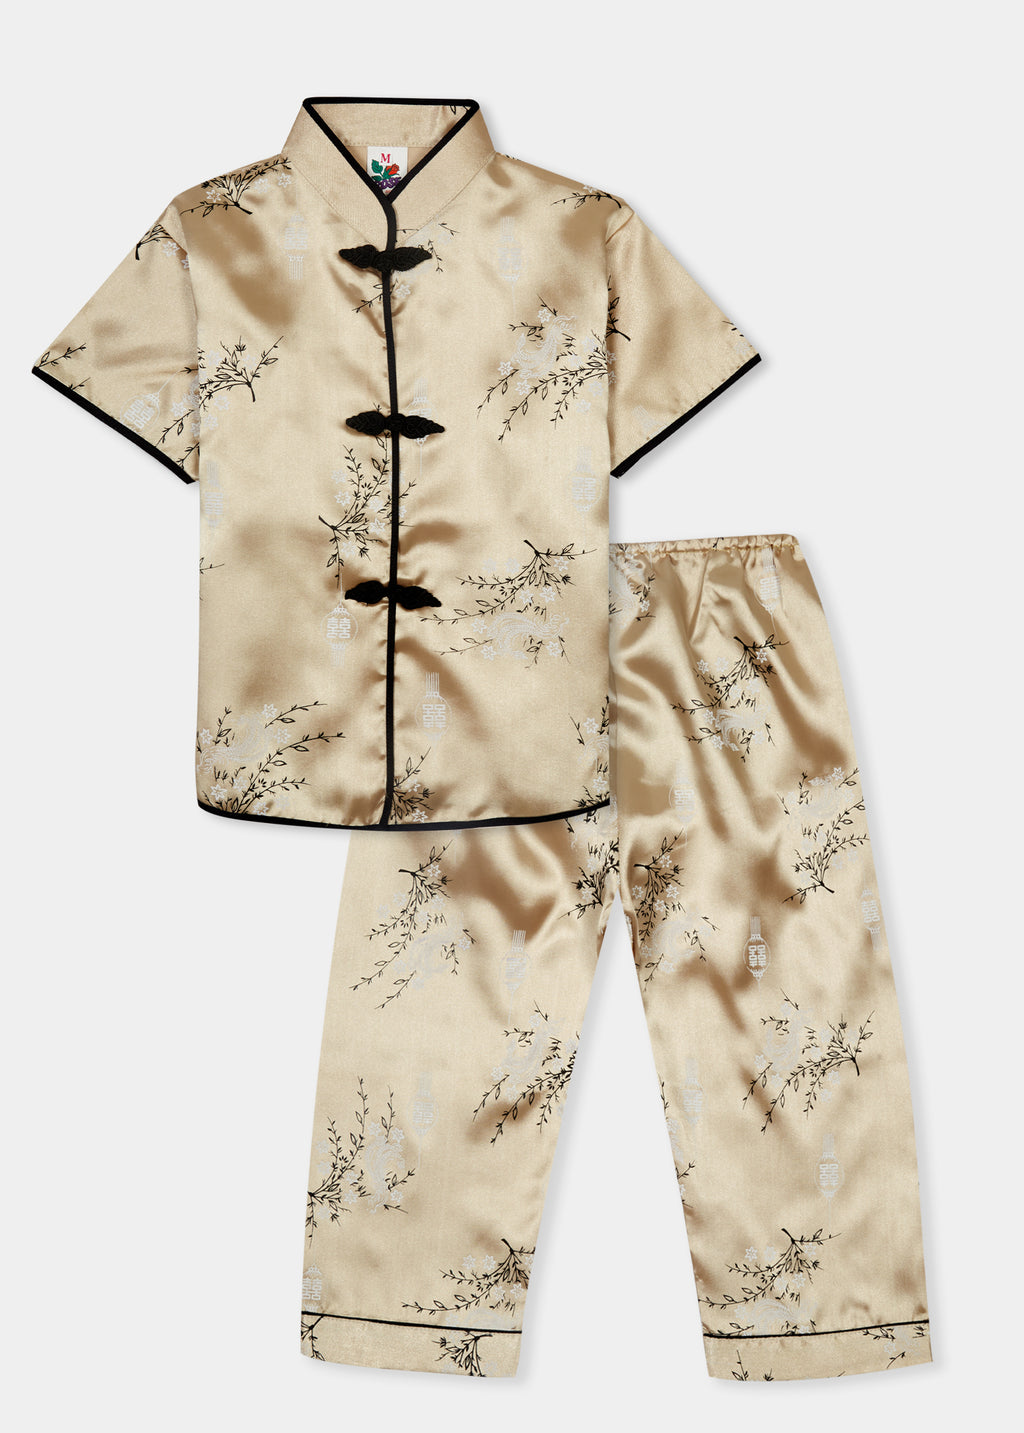 Traditionally styled pyjamas with Chinese features of mandarin collar and flower and knot frog fastenings. Manufactured in a classic gold silky rayon/polyester with a bird of paradise and Chinese lantern print - a symbol of joy and good fortune. Pyjama top has short sleeves, contrast bound mandarin collar and centre front opening which closes with flower and knot frog fastenings. Elasticated waist pyjama bottoms with contrast piped hem cuffs